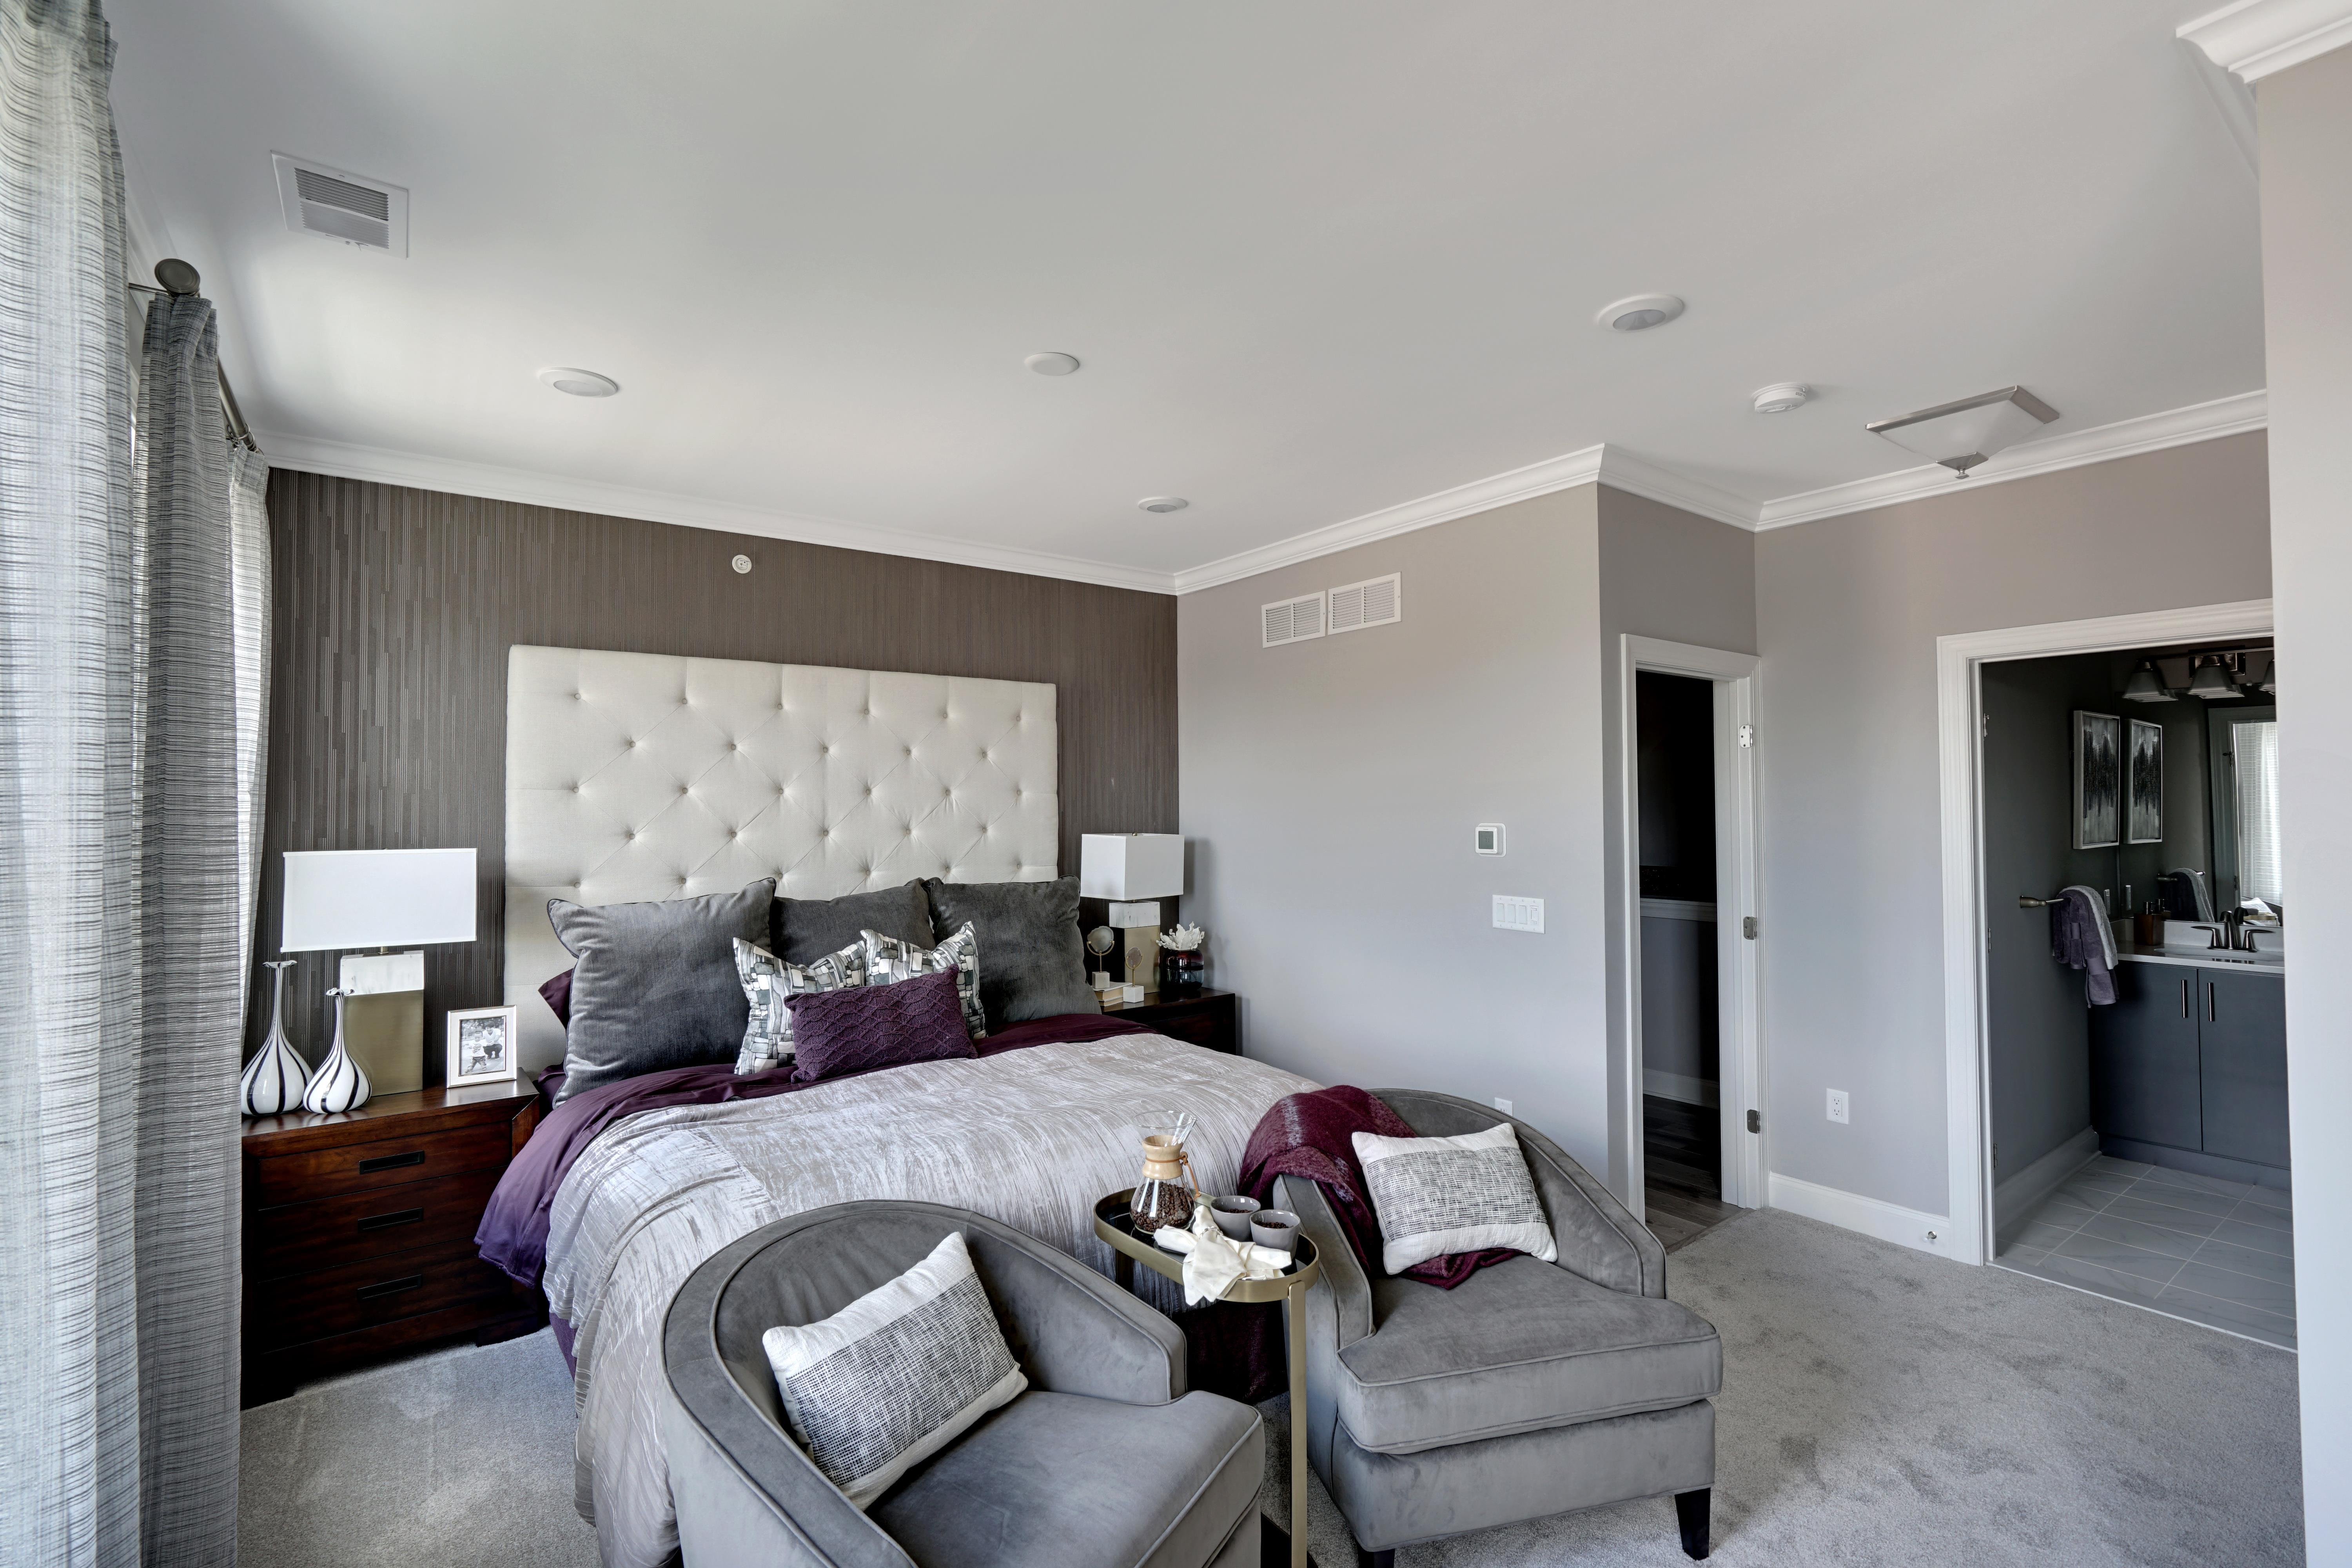 Bedroom featured in the Brookside By American Properties Realty in Middlesex County, NJ